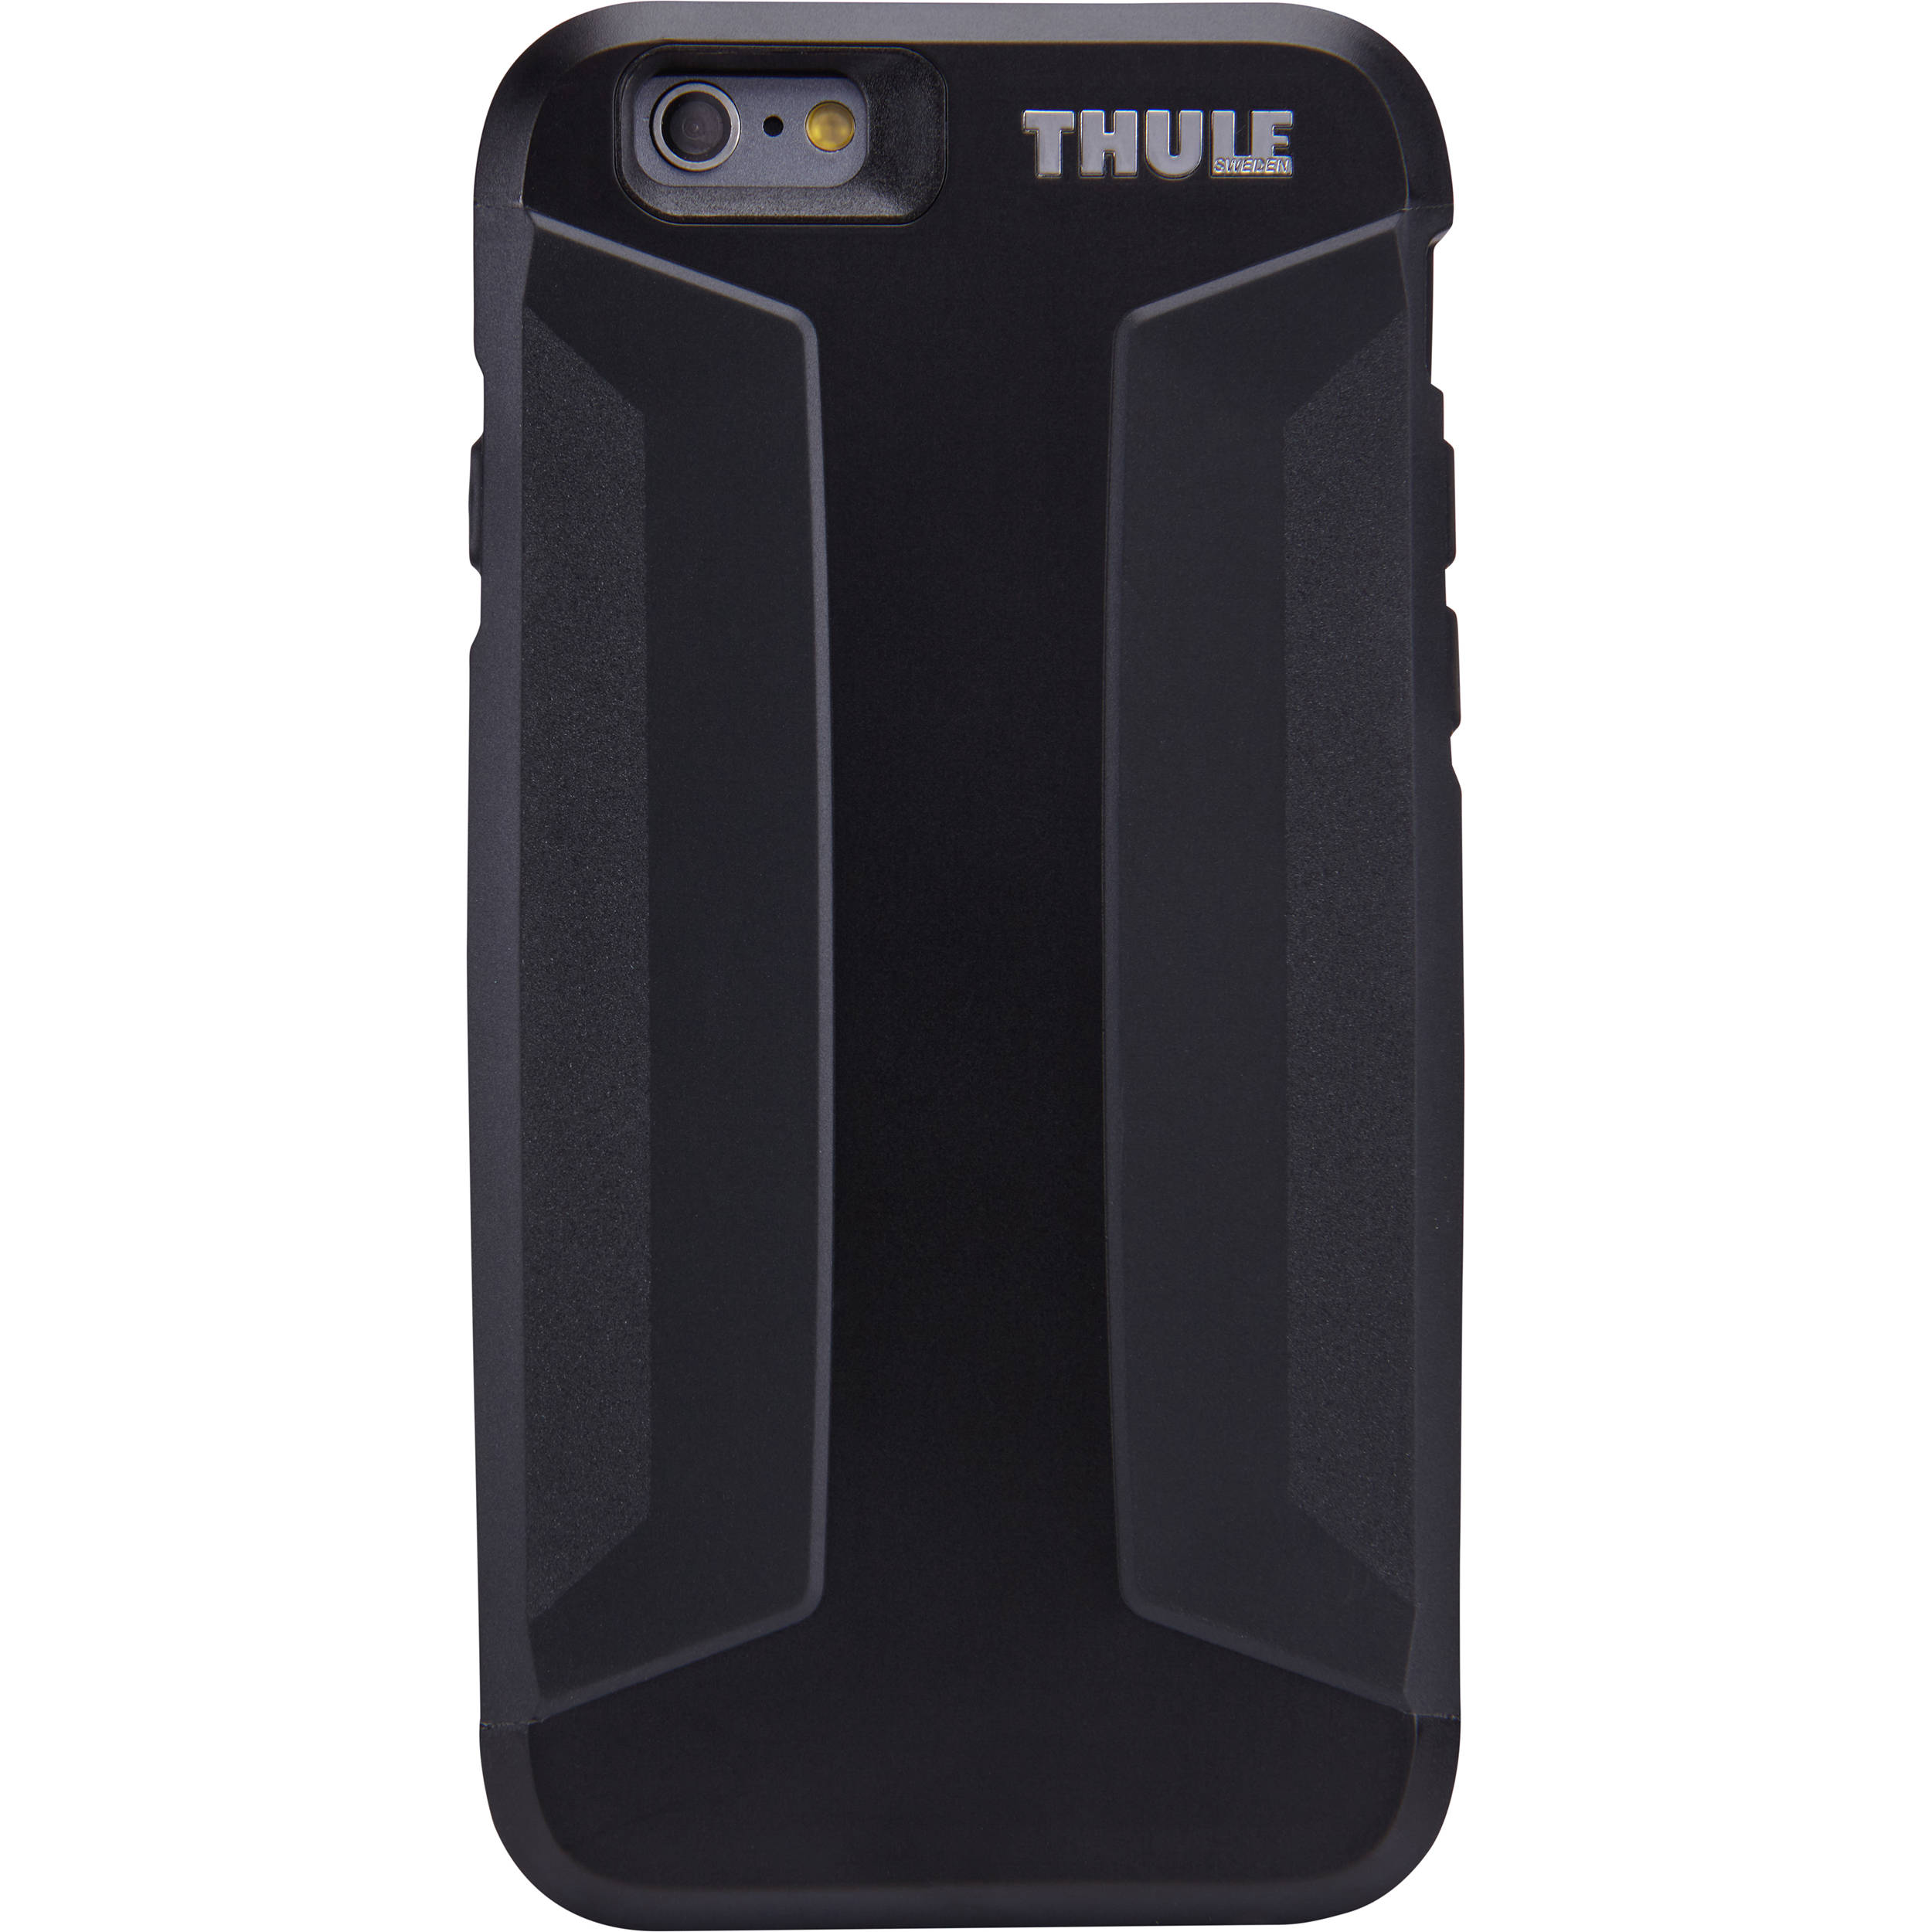 quality design c8e45 5b56f Thule Atmos X3 Case for iPhone 6 Plus/6s Plus (Black)